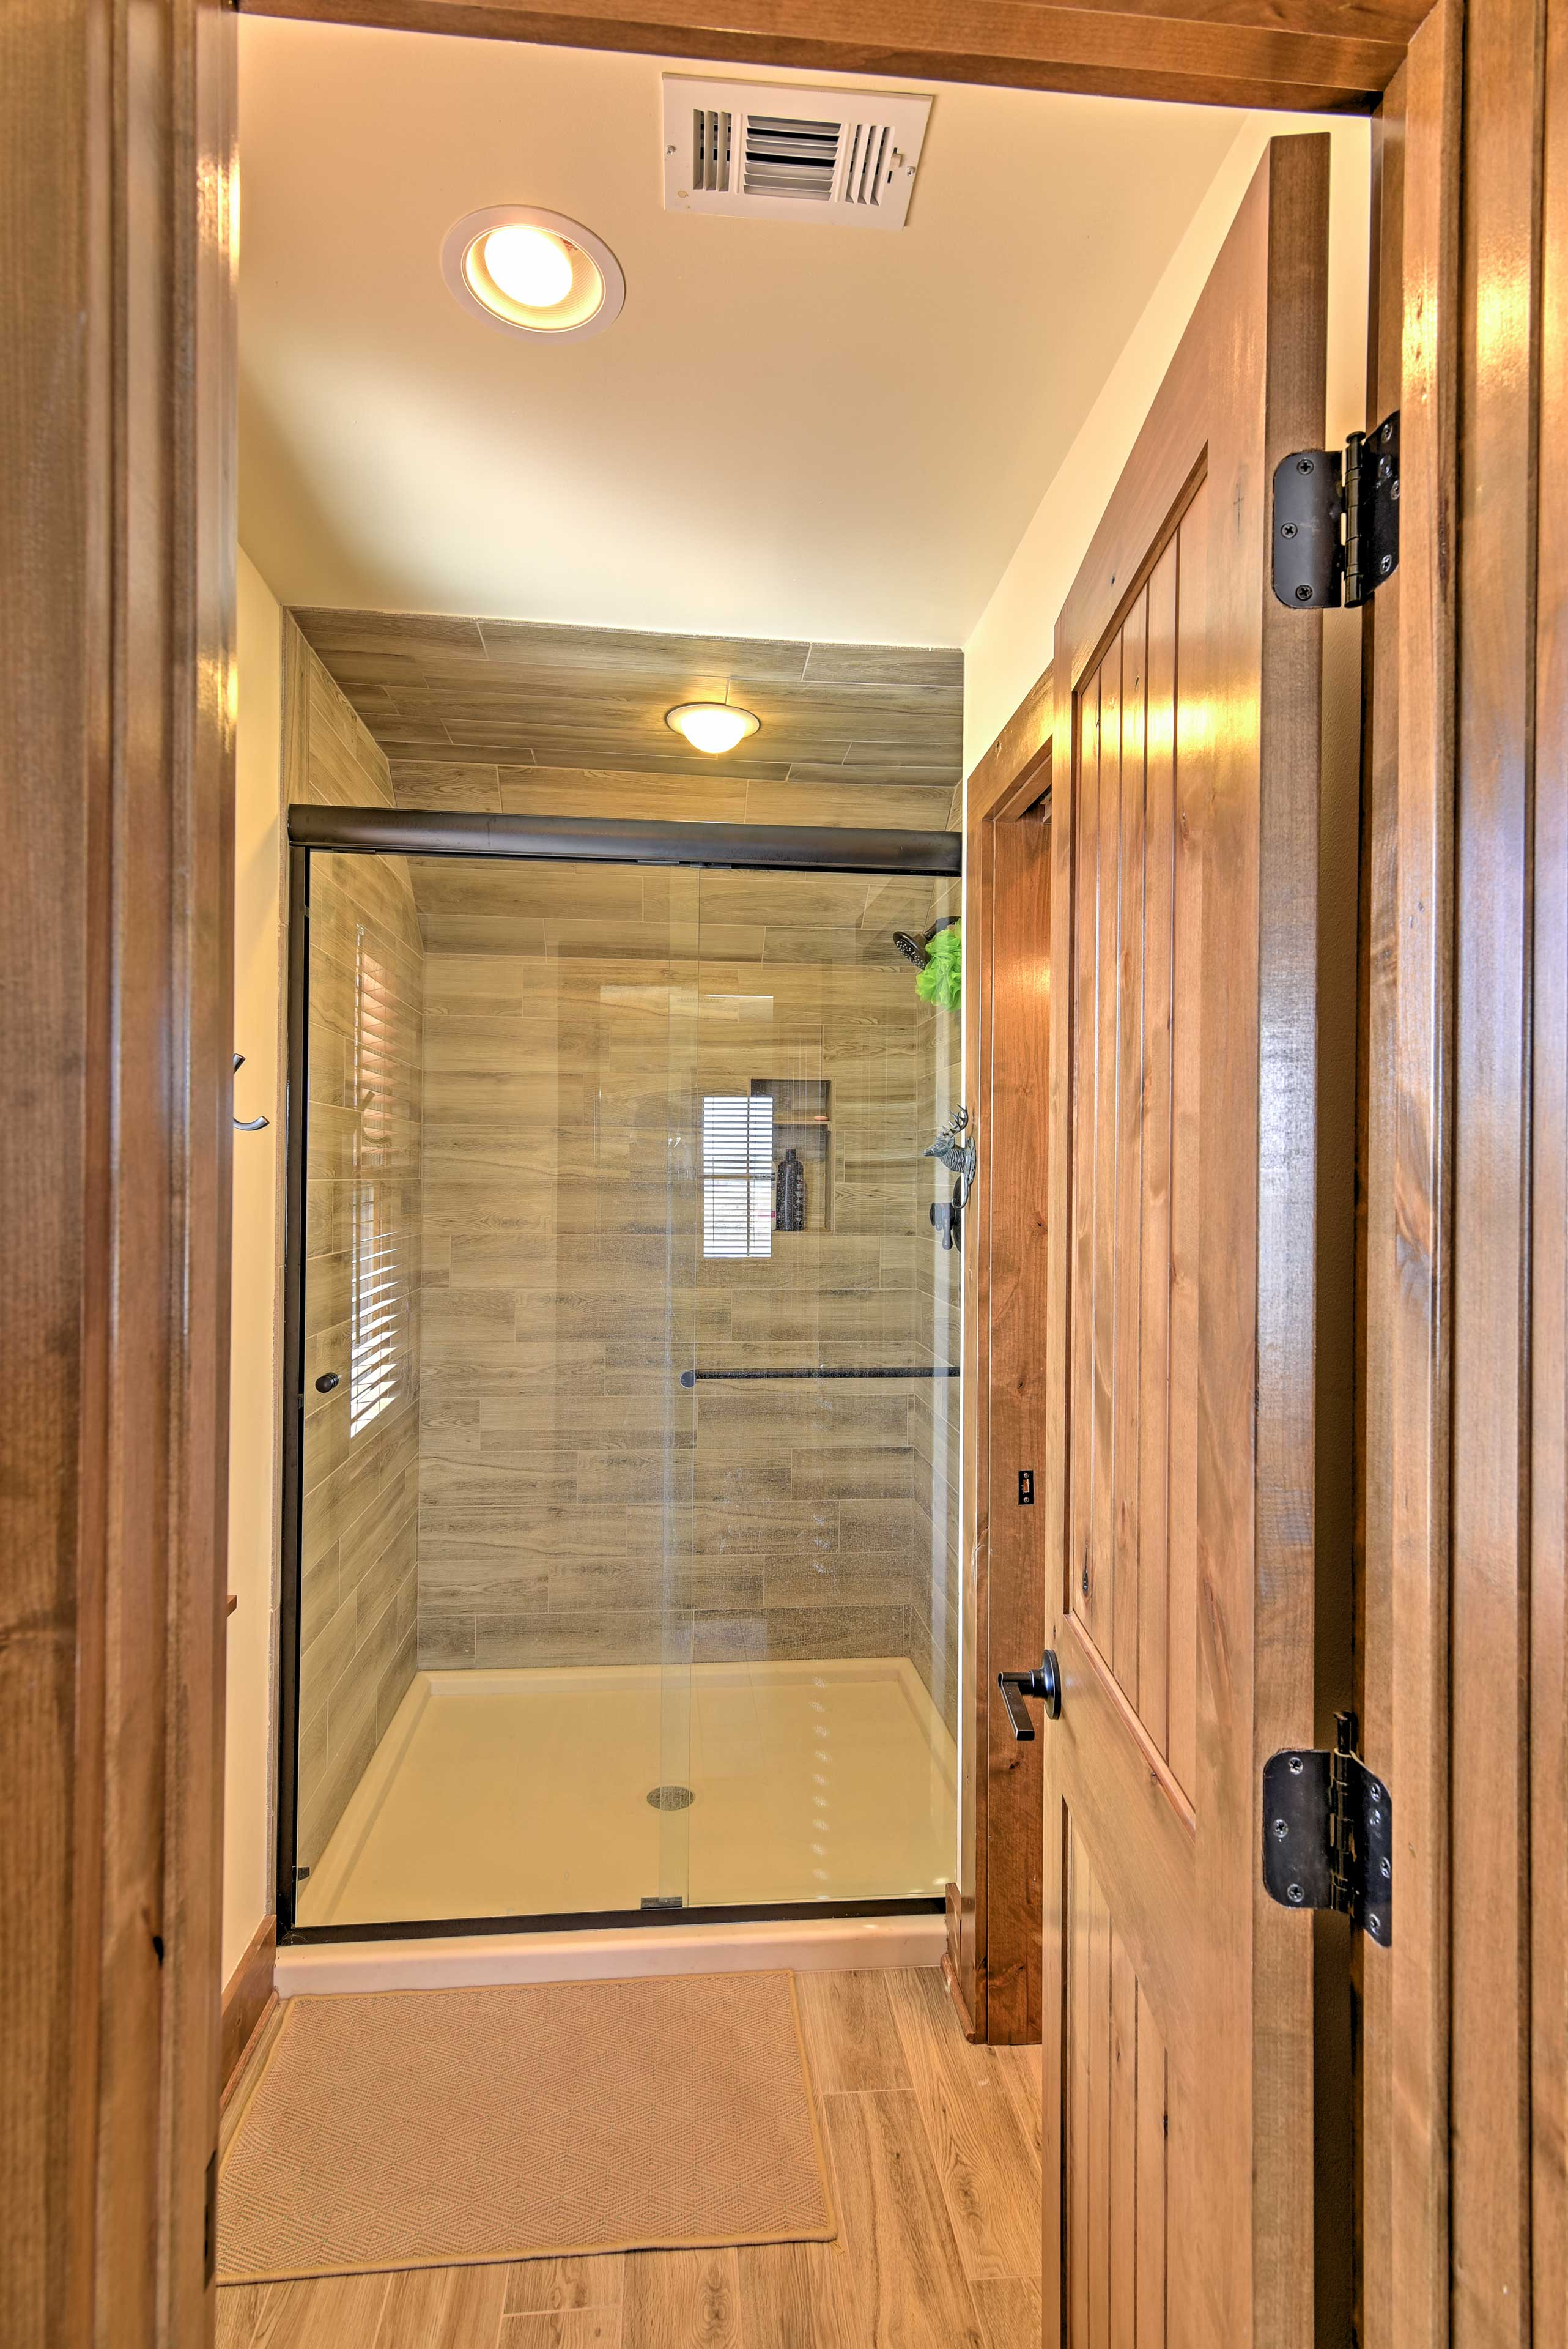 Rinse off in this pristine shower.